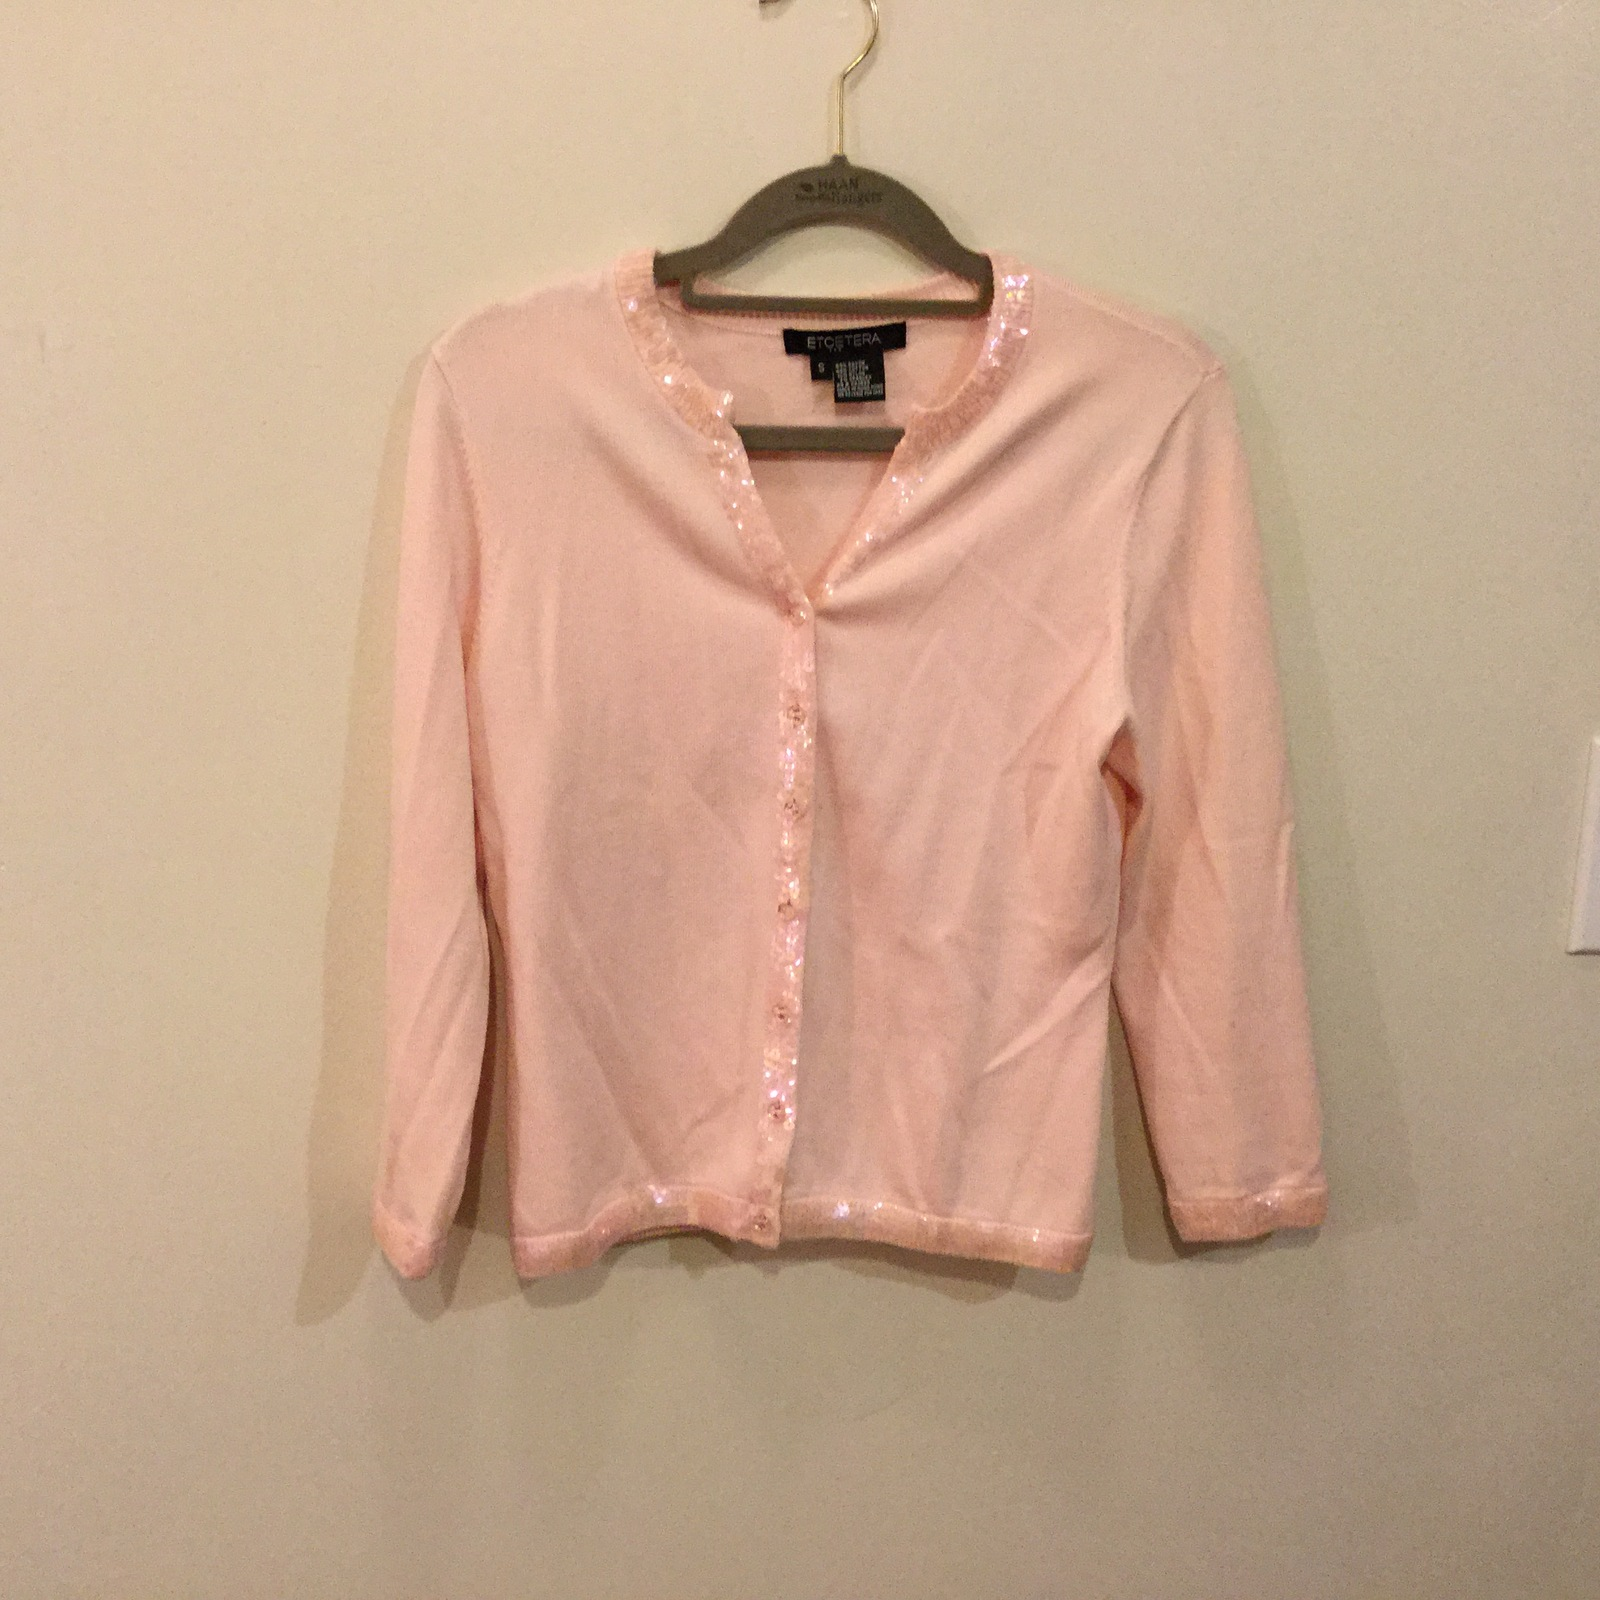 Etcetera Light Pink V-Neck Cardigan Sweater with Sequins, size Small